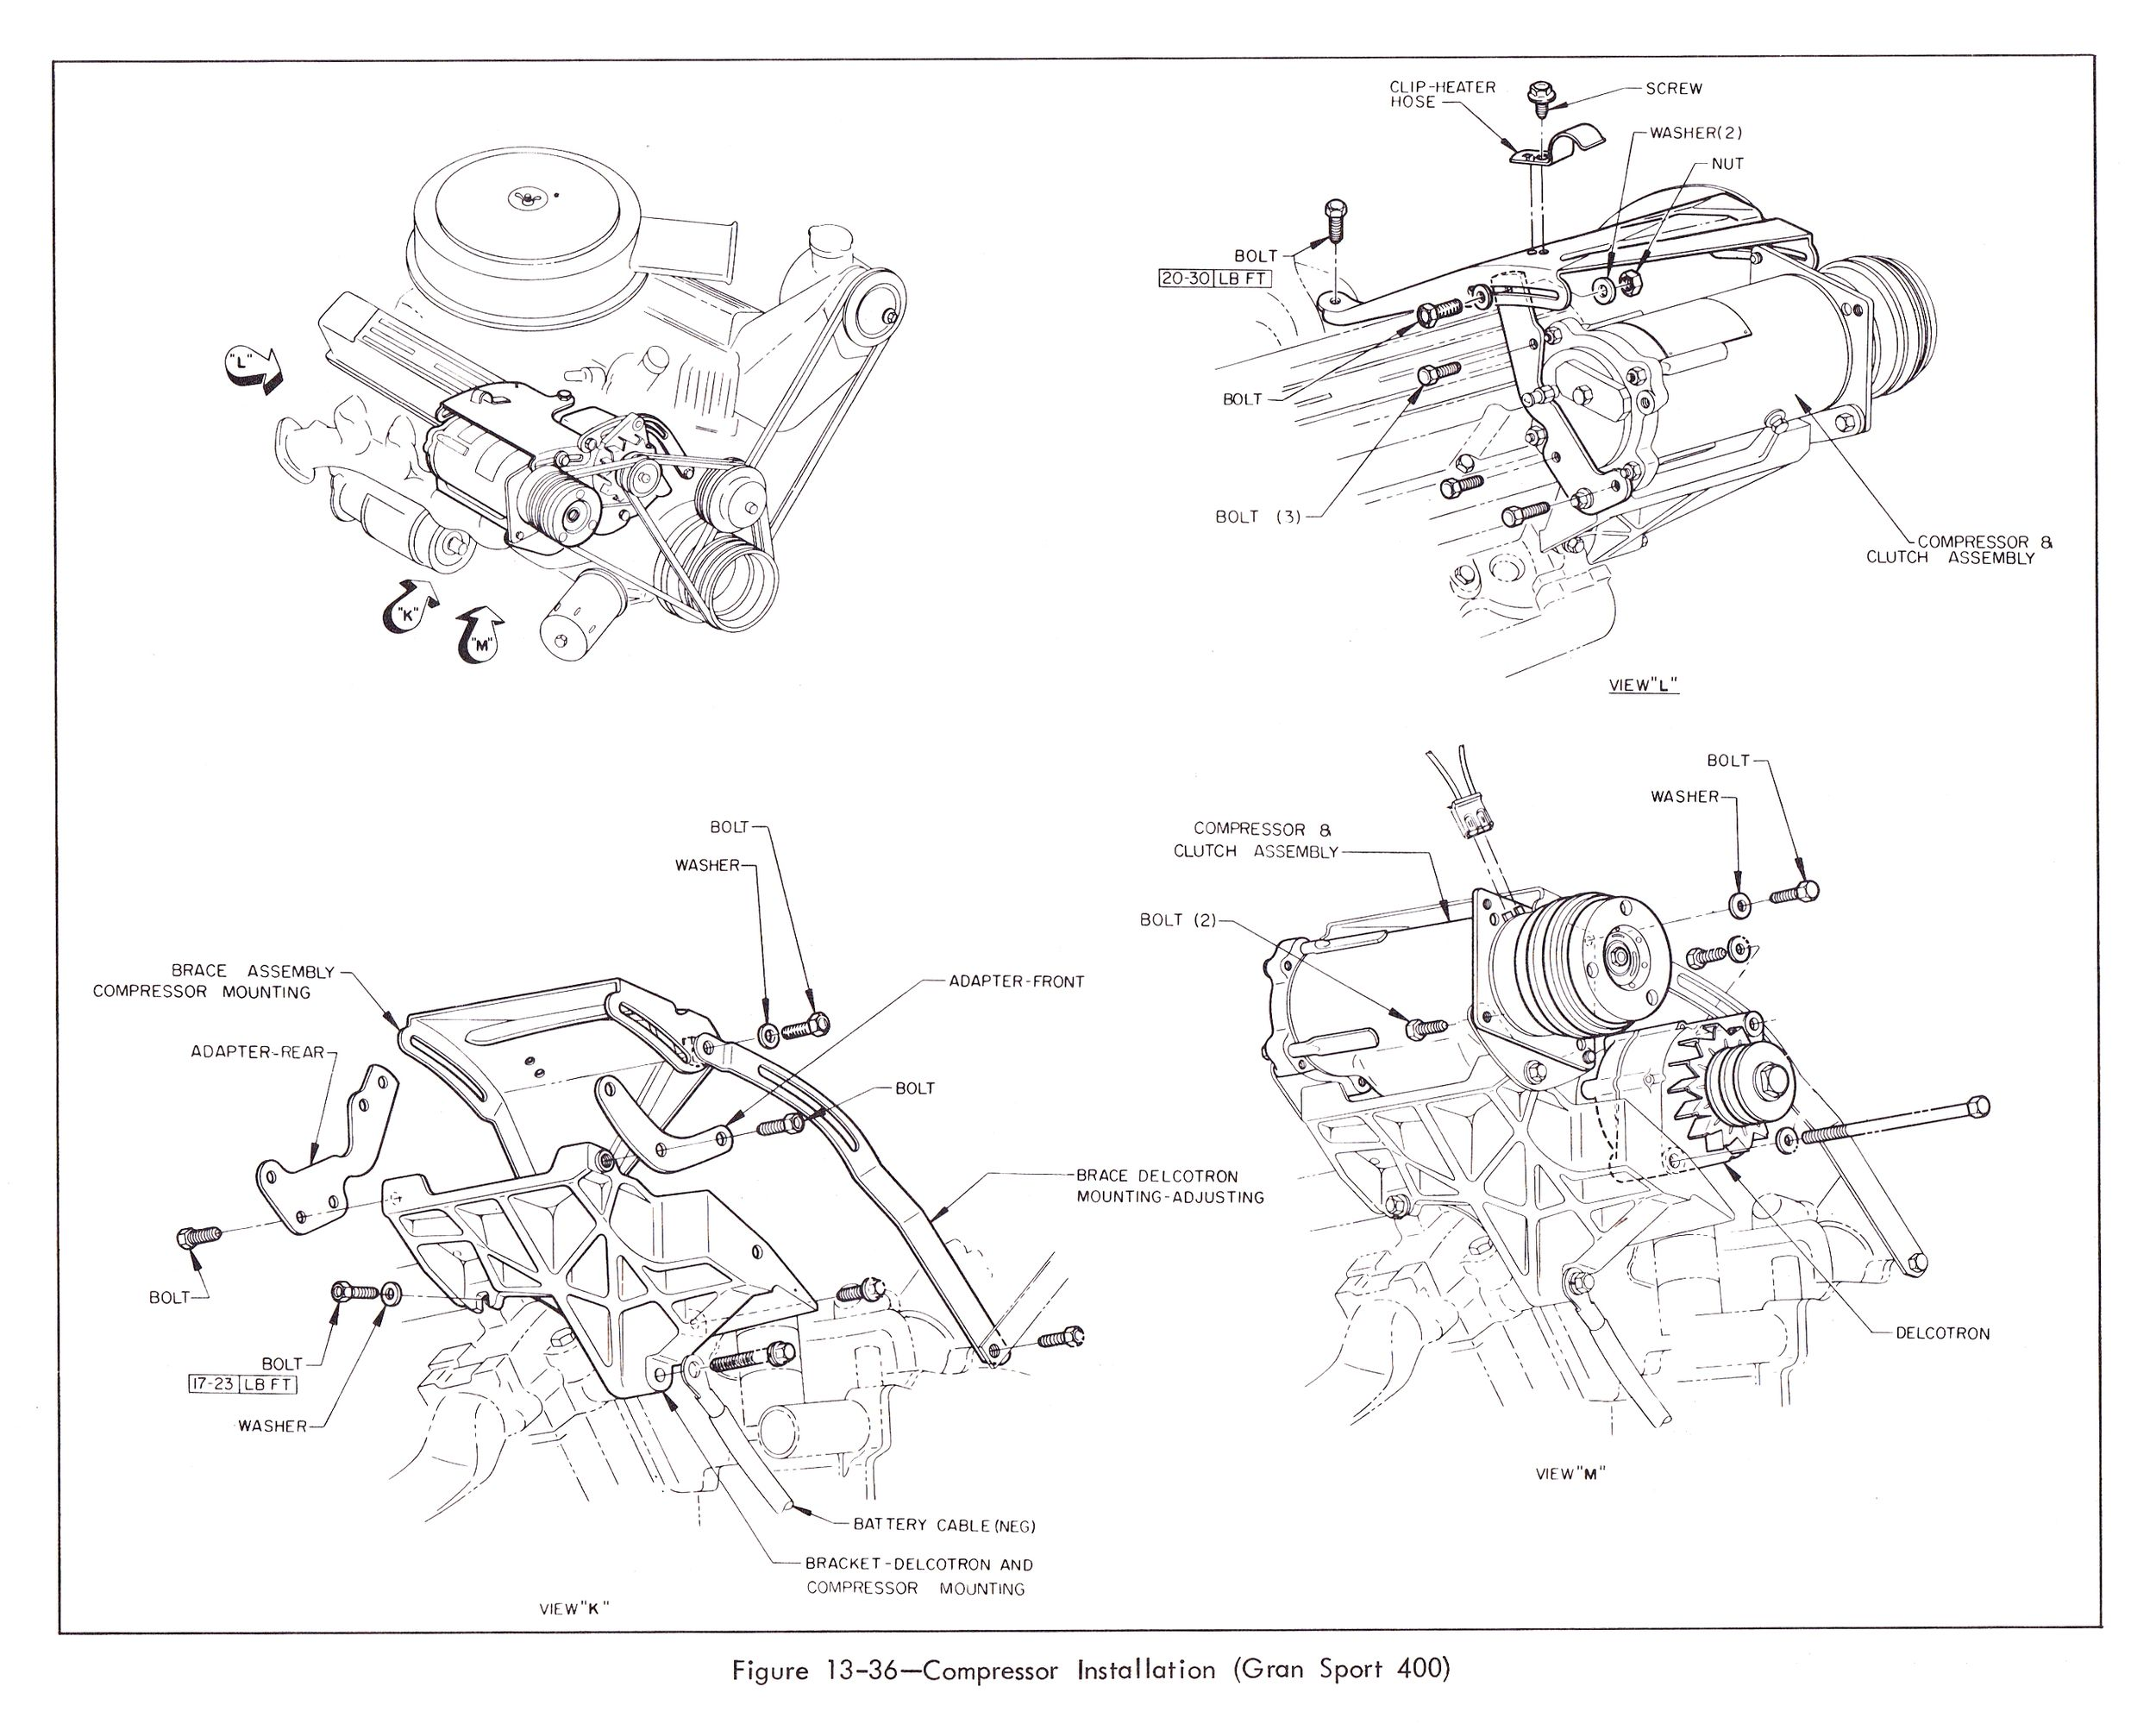 [WRG-9159] 1968 Buick Skylark Engine Diagram